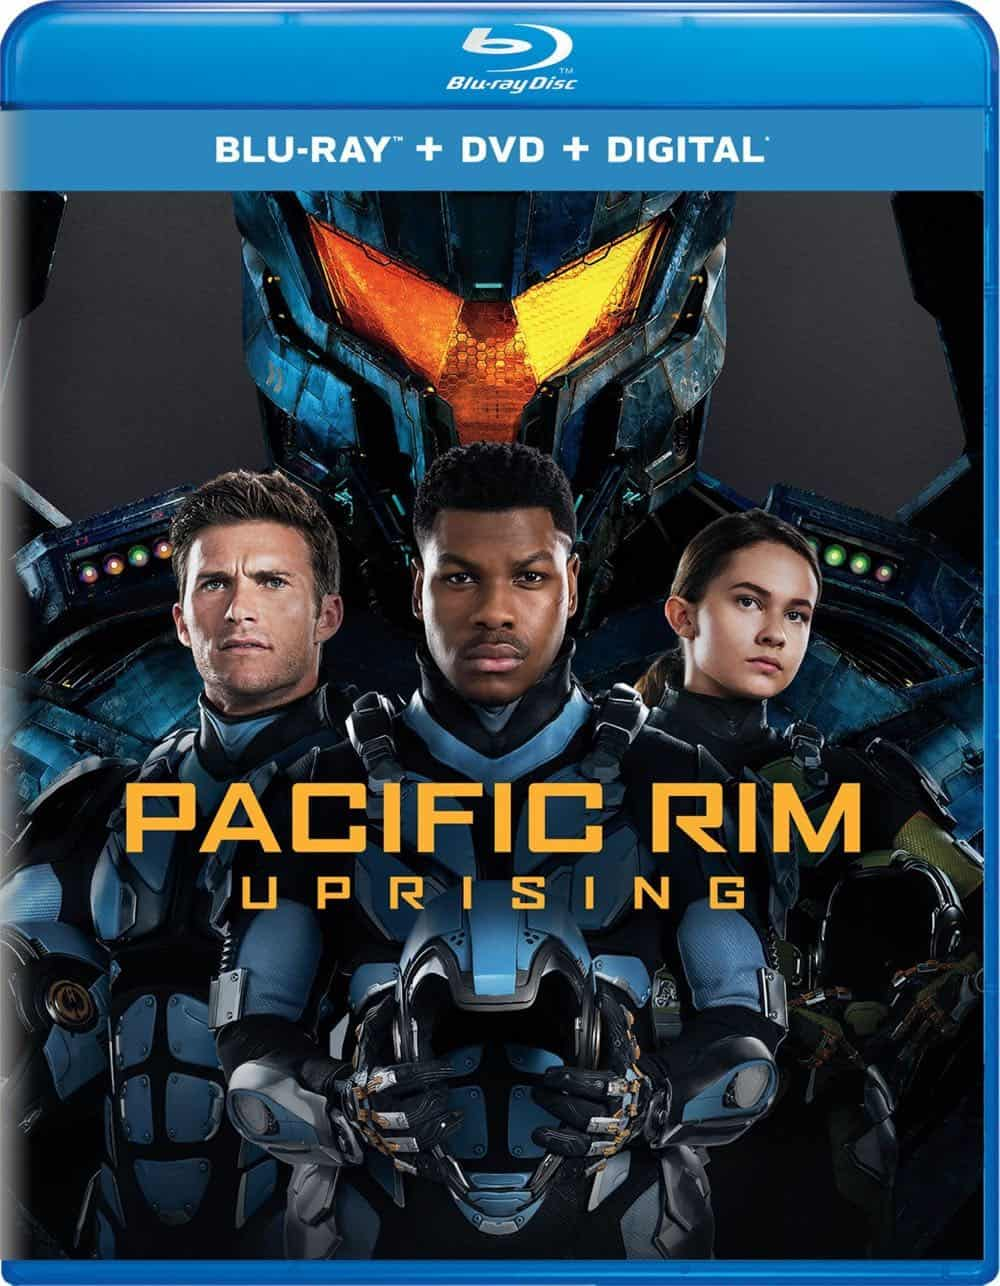 Pacific Rim Uprising Blu-ray DVD Digital Cover